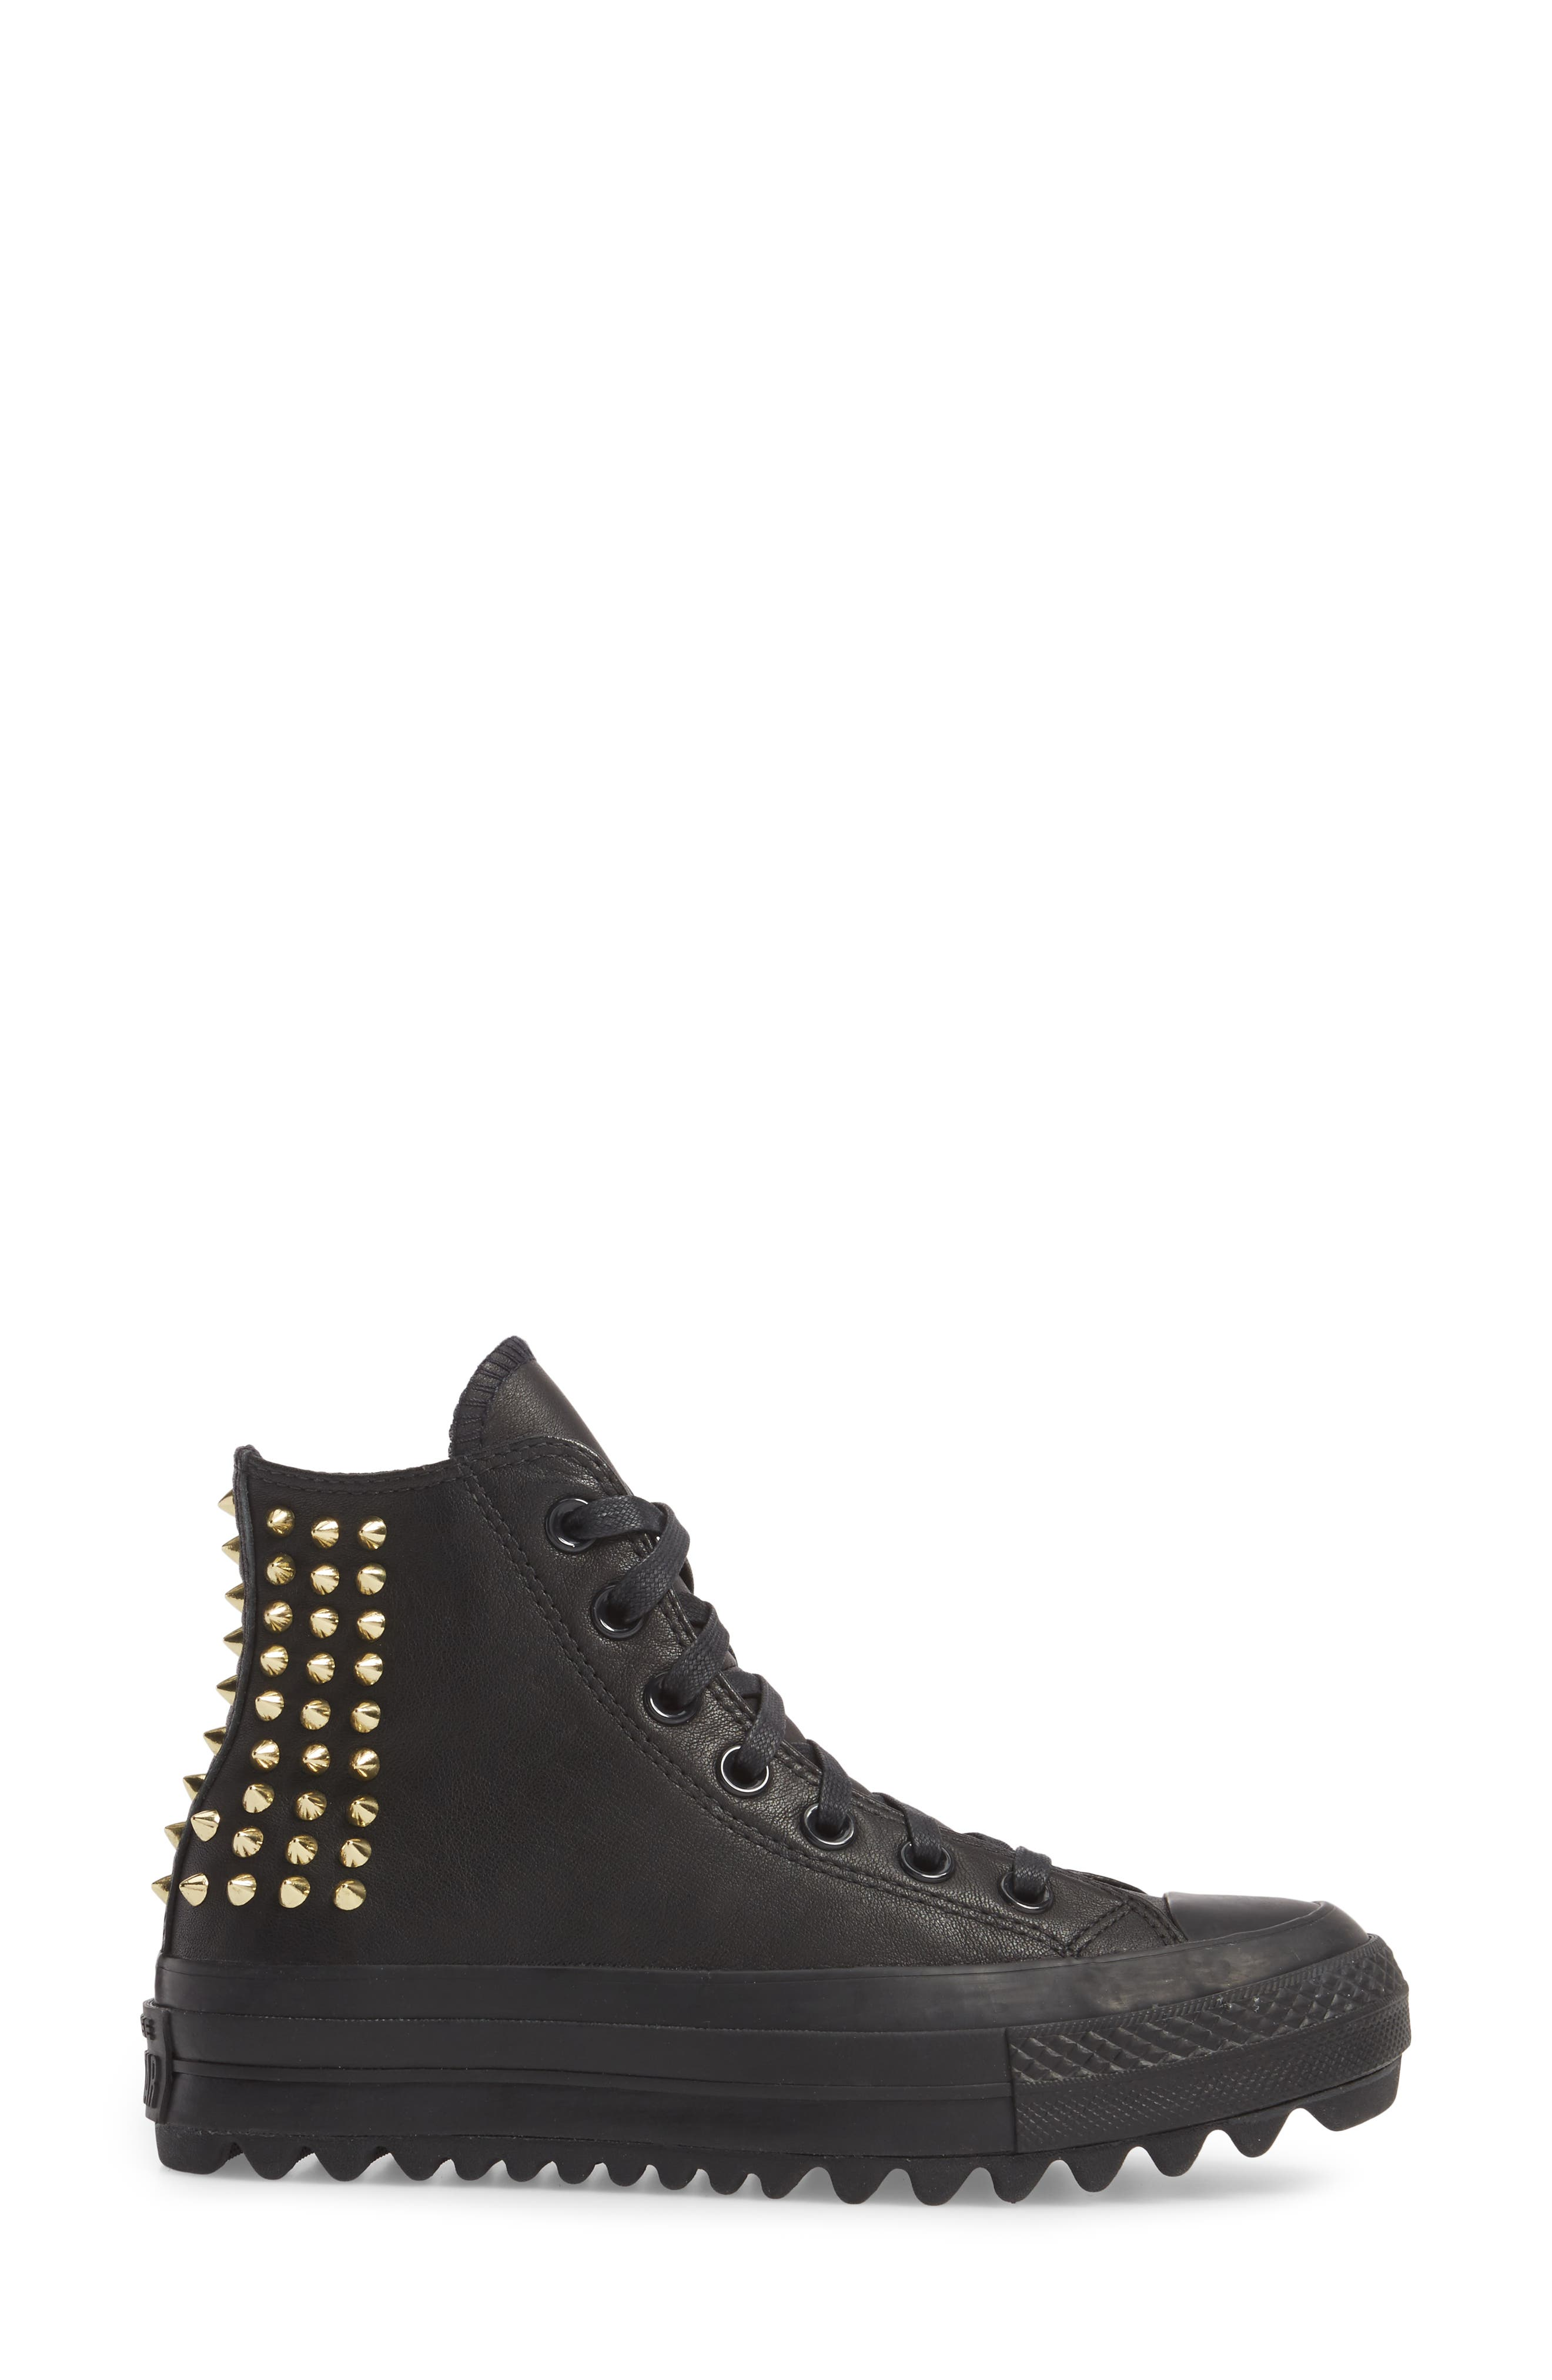 Chuck Taylor<sup>®</sup> All Star<sup>®</sup> Lift Ripple Studded High Top Sneaker,                             Alternate thumbnail 3, color,                             001